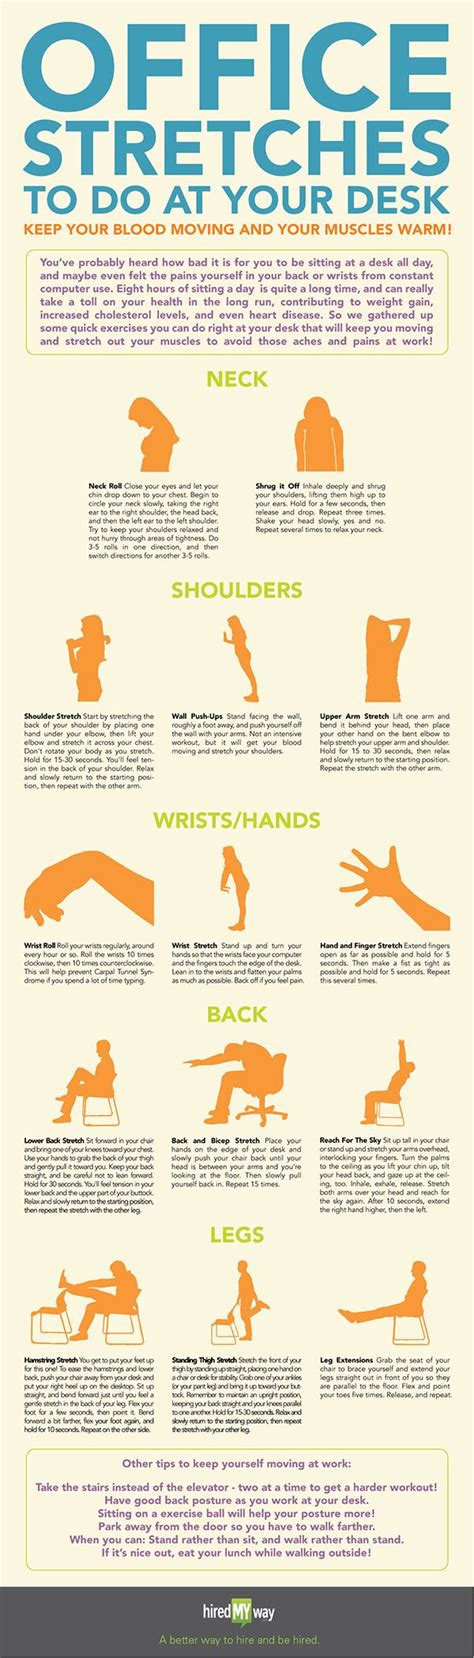 Desk Stretches At The Office Office Stretches To Do At Your Desk Infographic Best Infographics